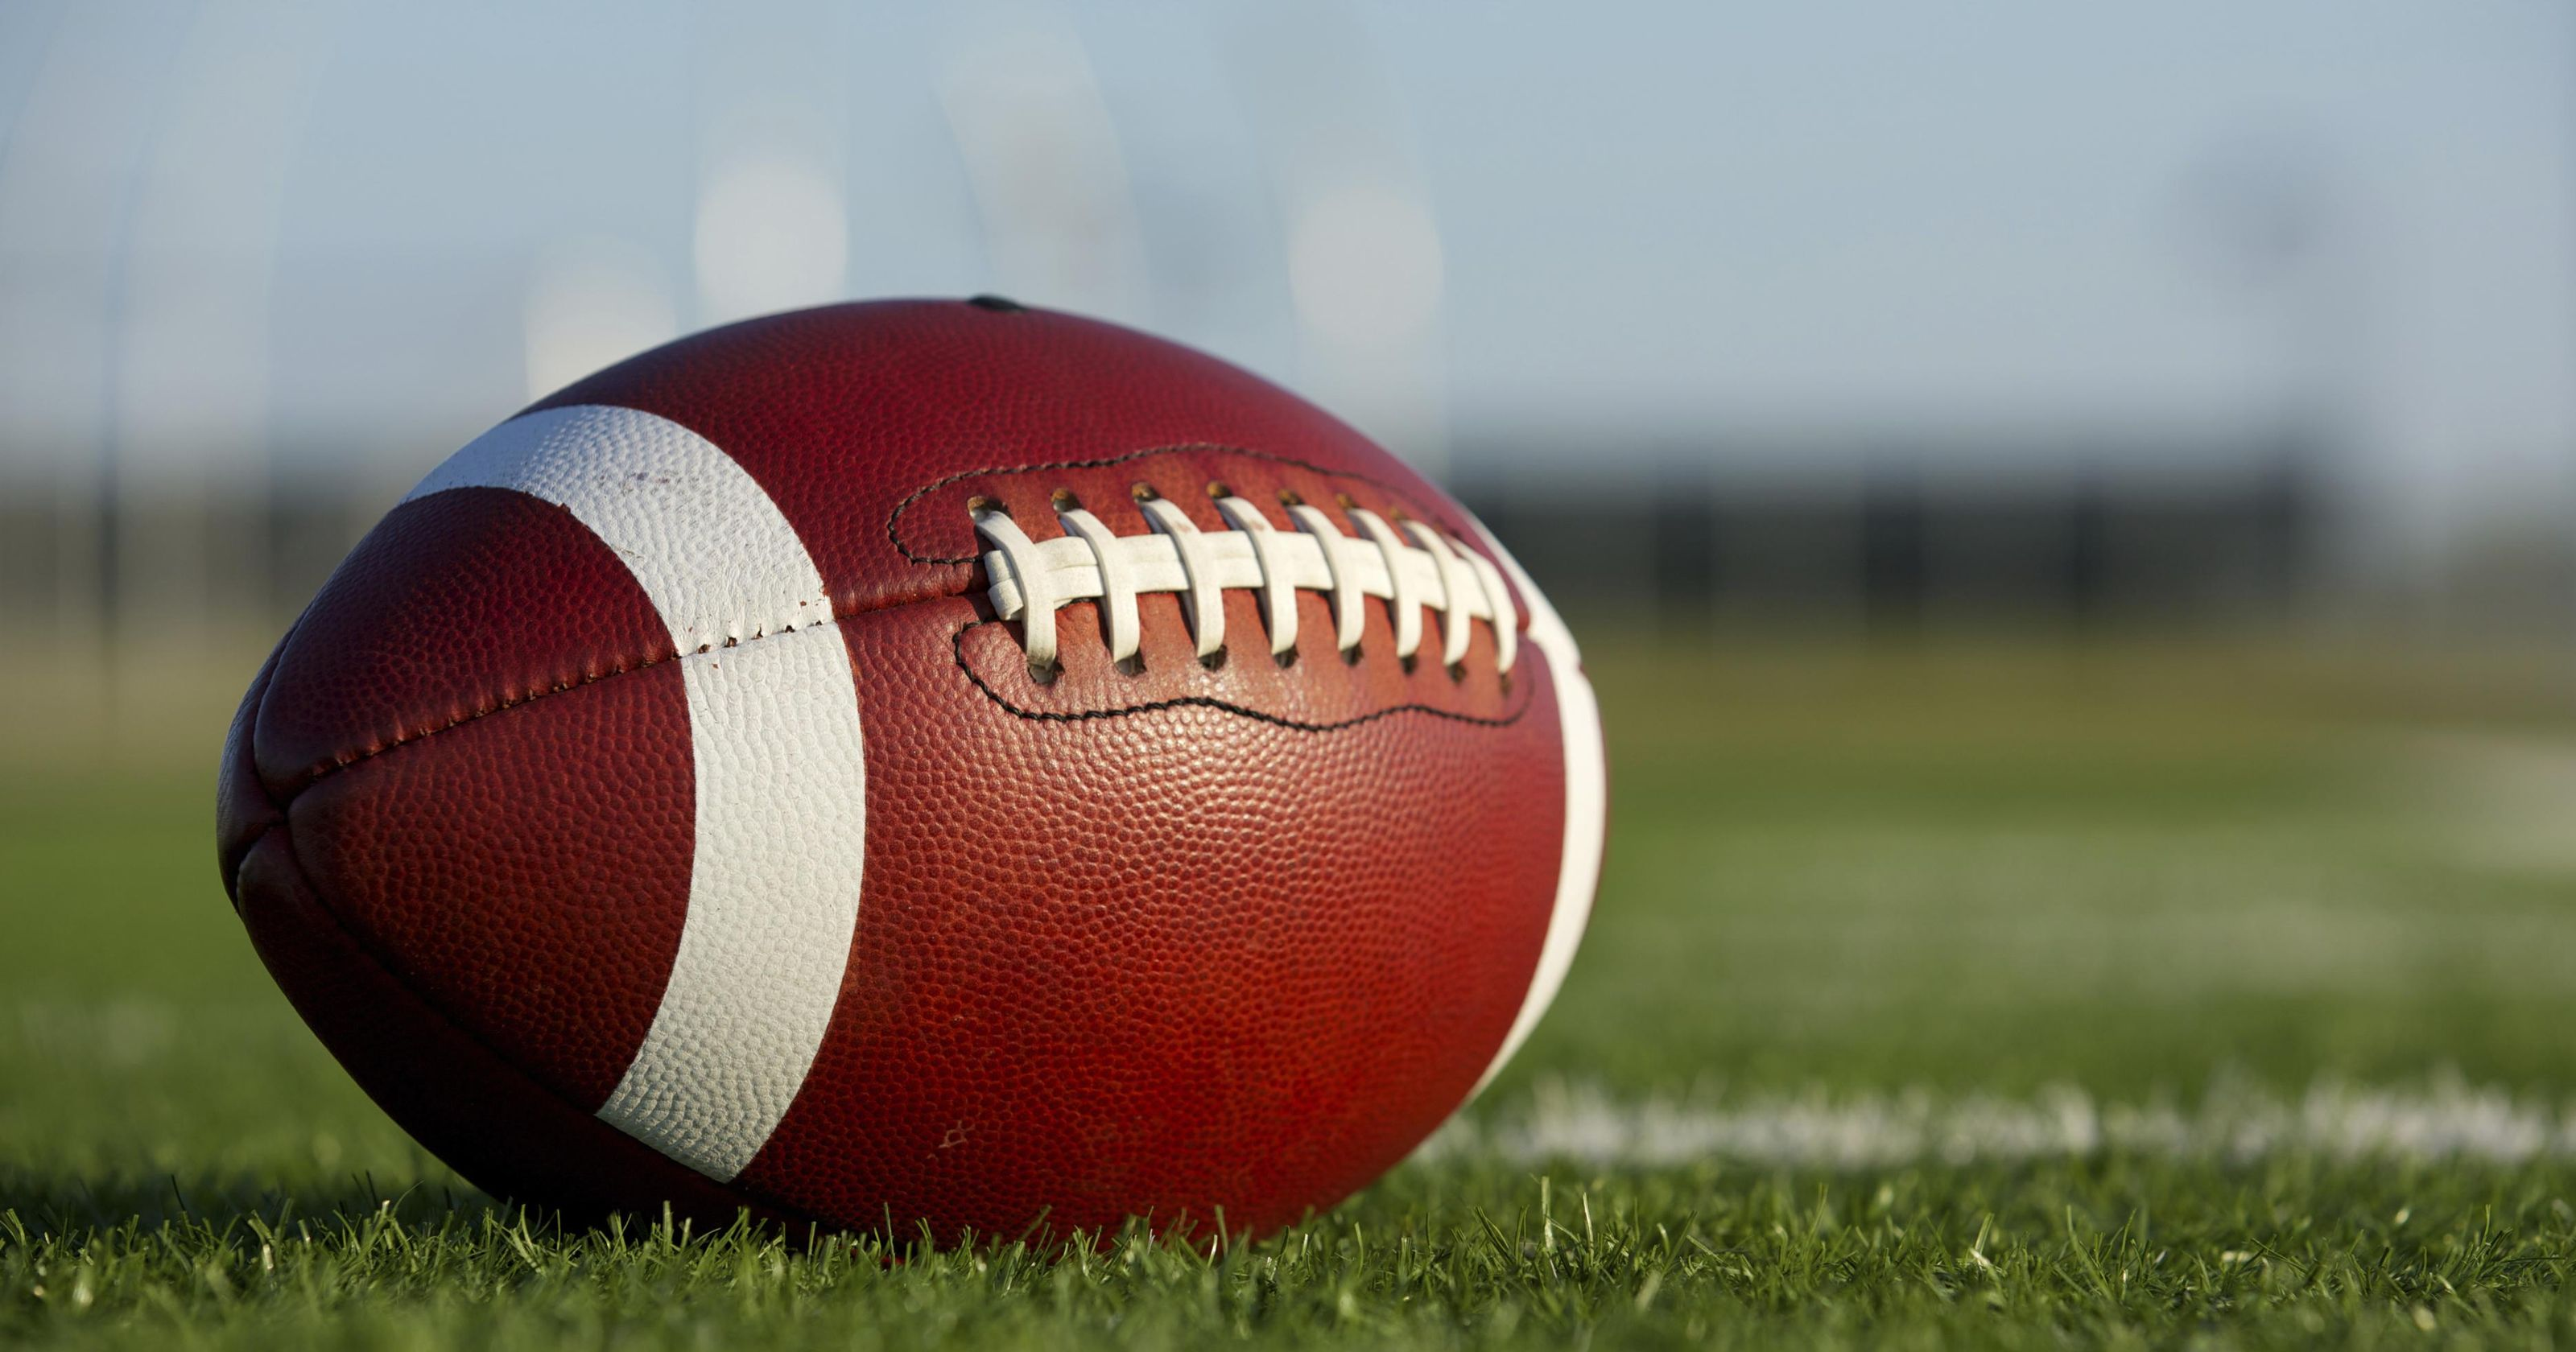 NFL Becomes The Least Popular Sport